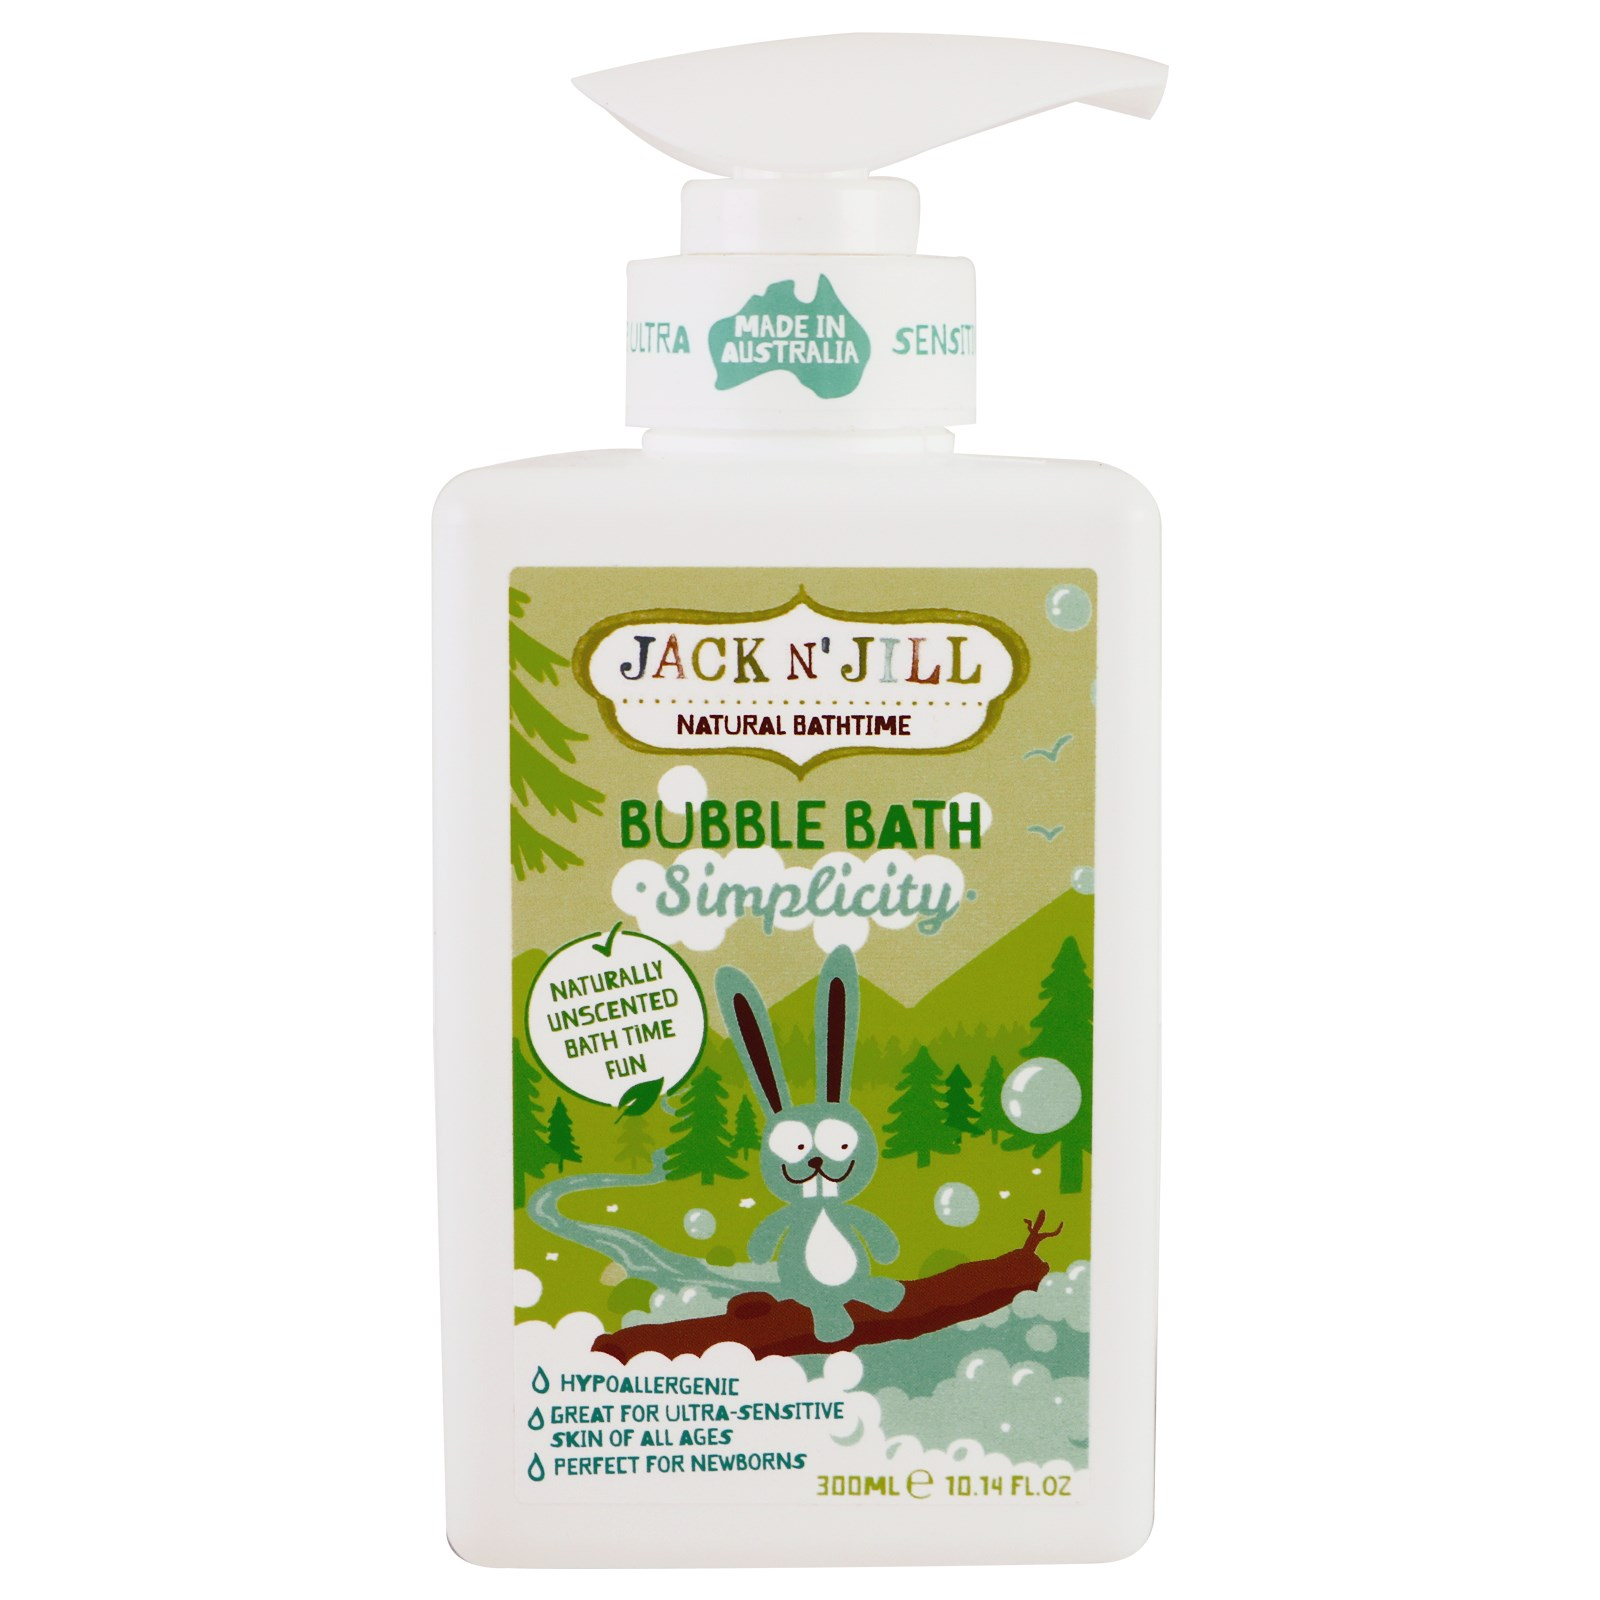 Ripe Organic Bubble Bath from Jack N' Jill